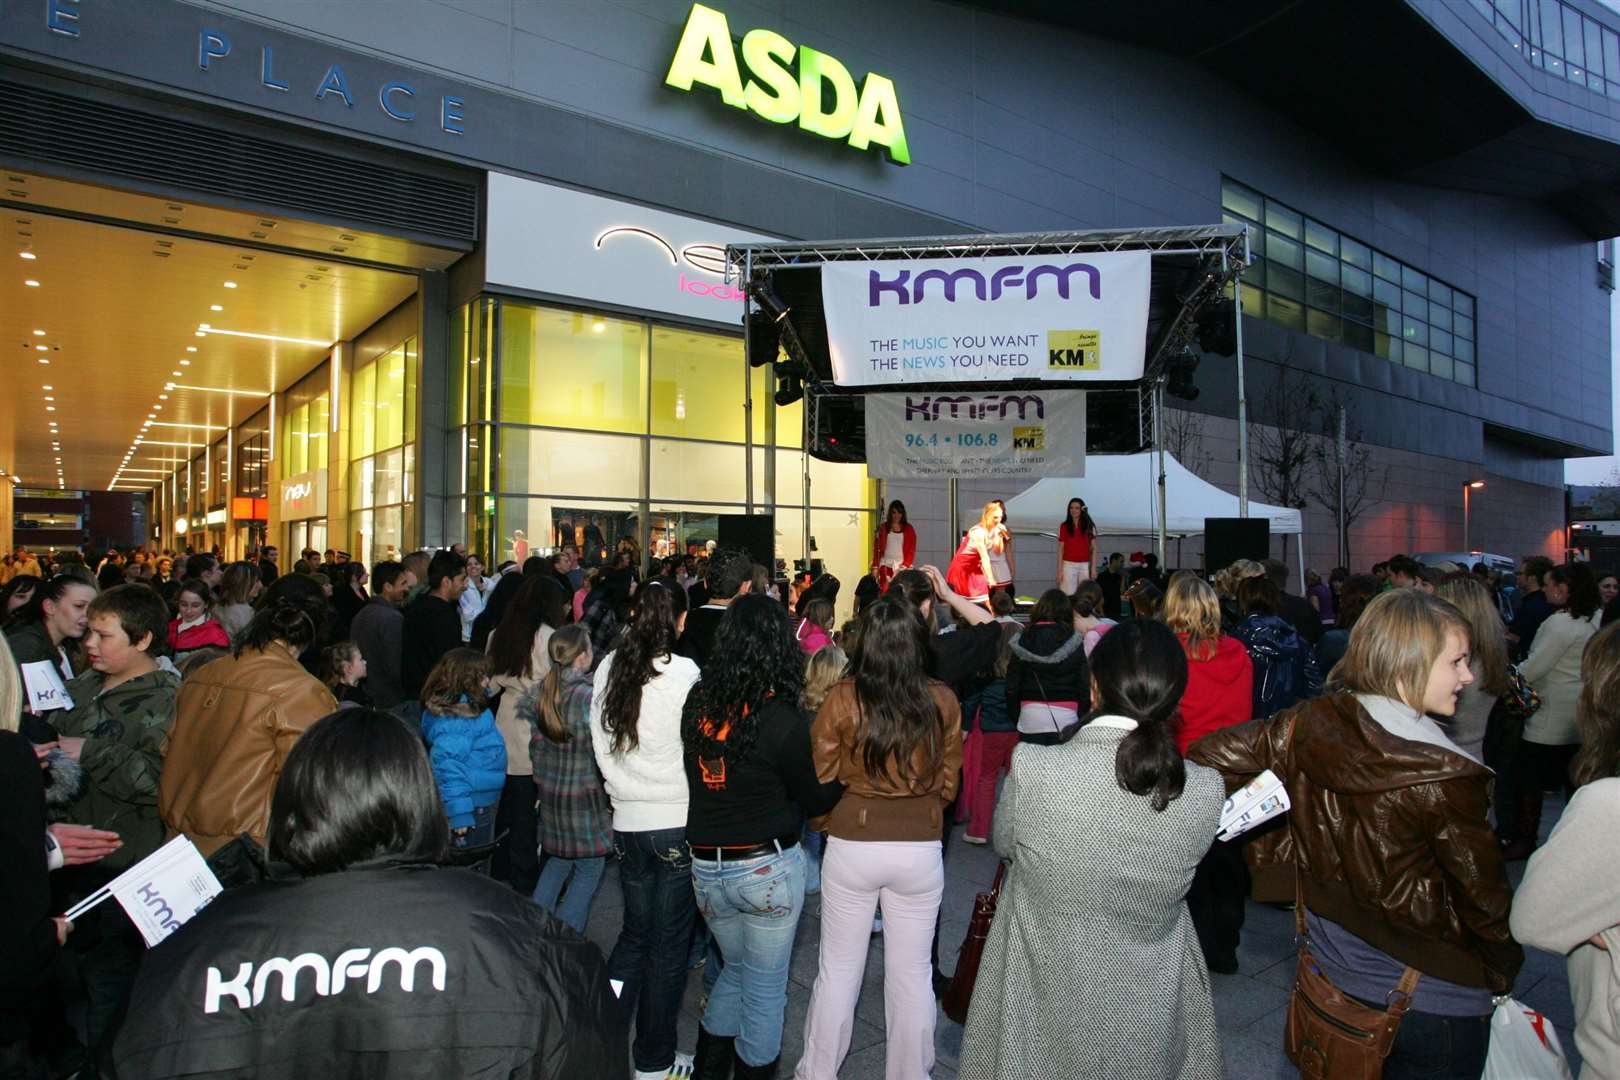 Bouverie Place Shopping Centre's Christmas entertainment and show 2009. There was dancers on stage, kmfm Adam Dowling, plus De-Tour from X Factor appeared